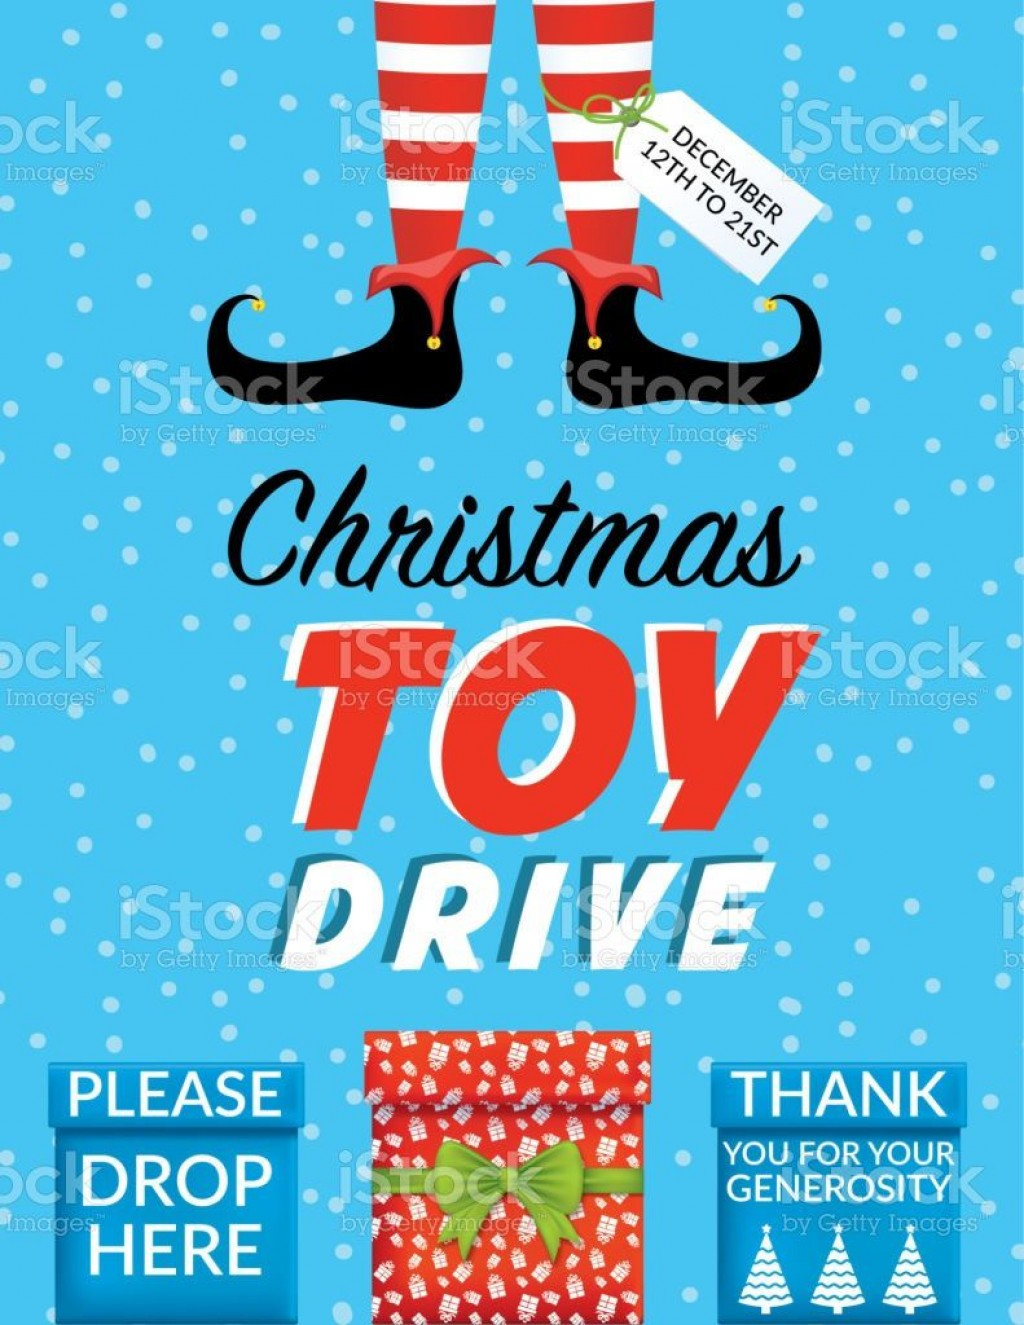 008 Imposing Toy Drive Flyer Template Free Inspiration  Download ChristmaLarge